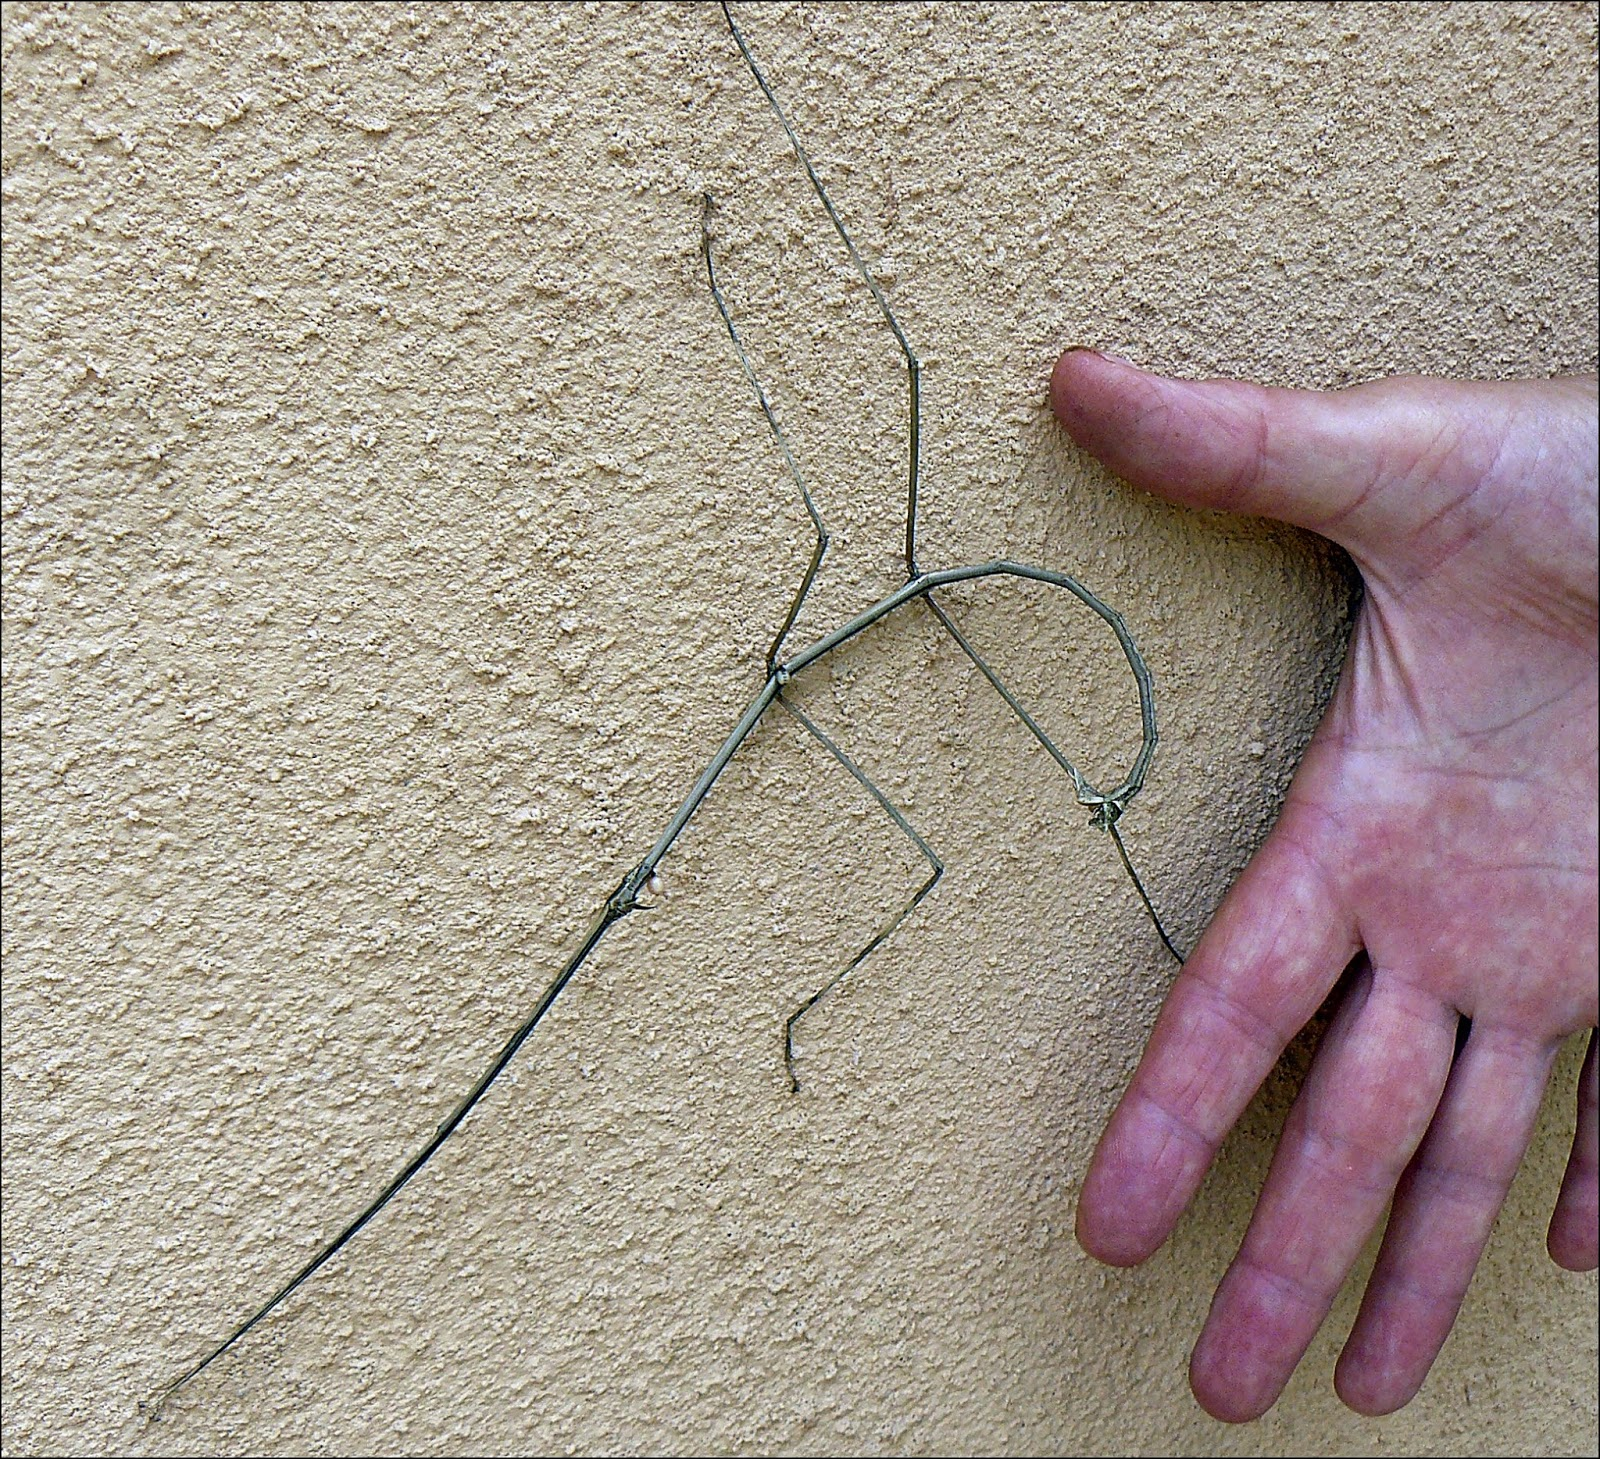 Long stick insect on stucco wall